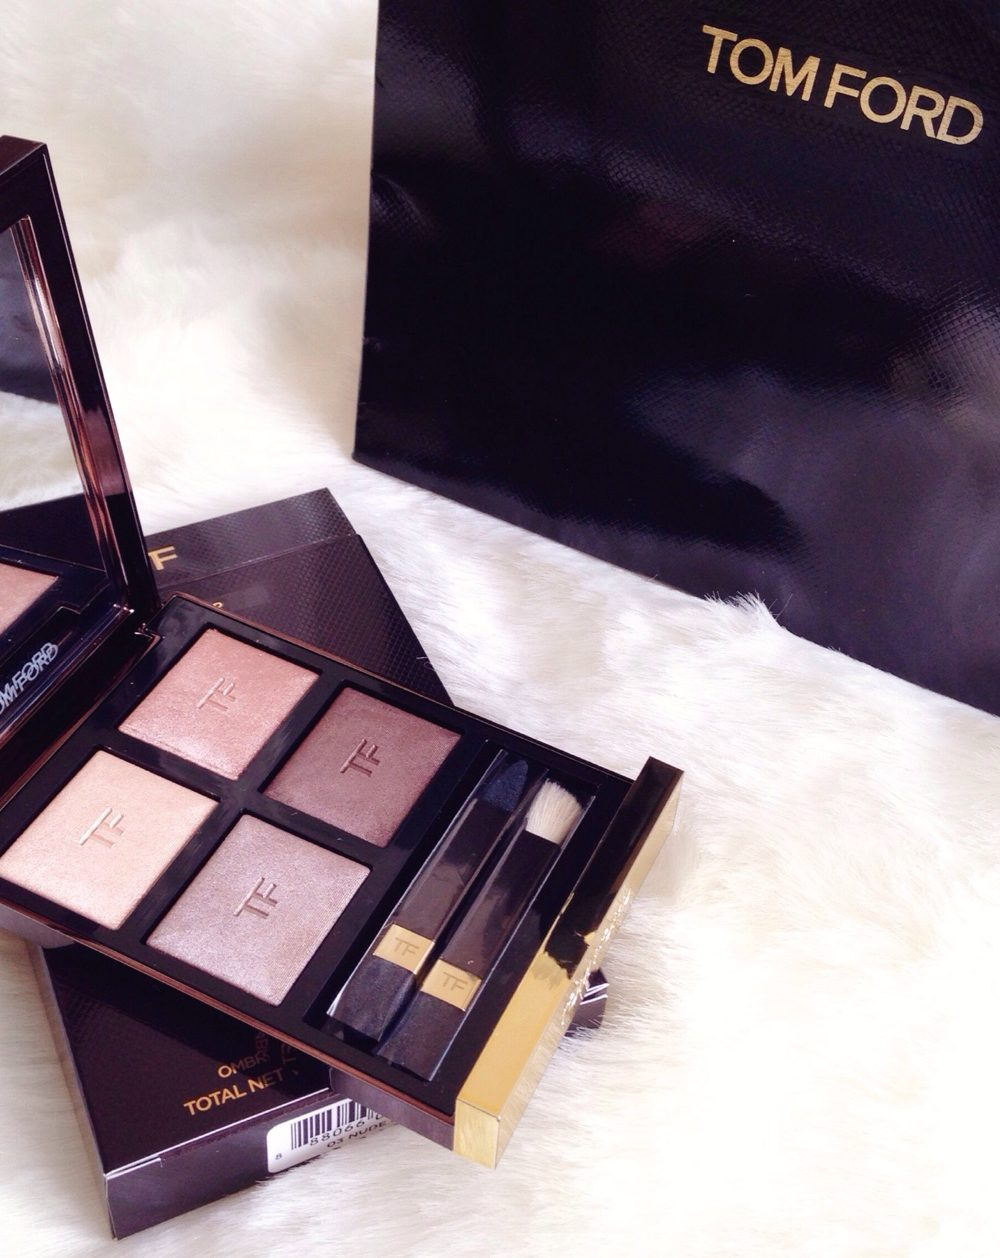 Tom Ford Nude Dip Eyeshadow Quad